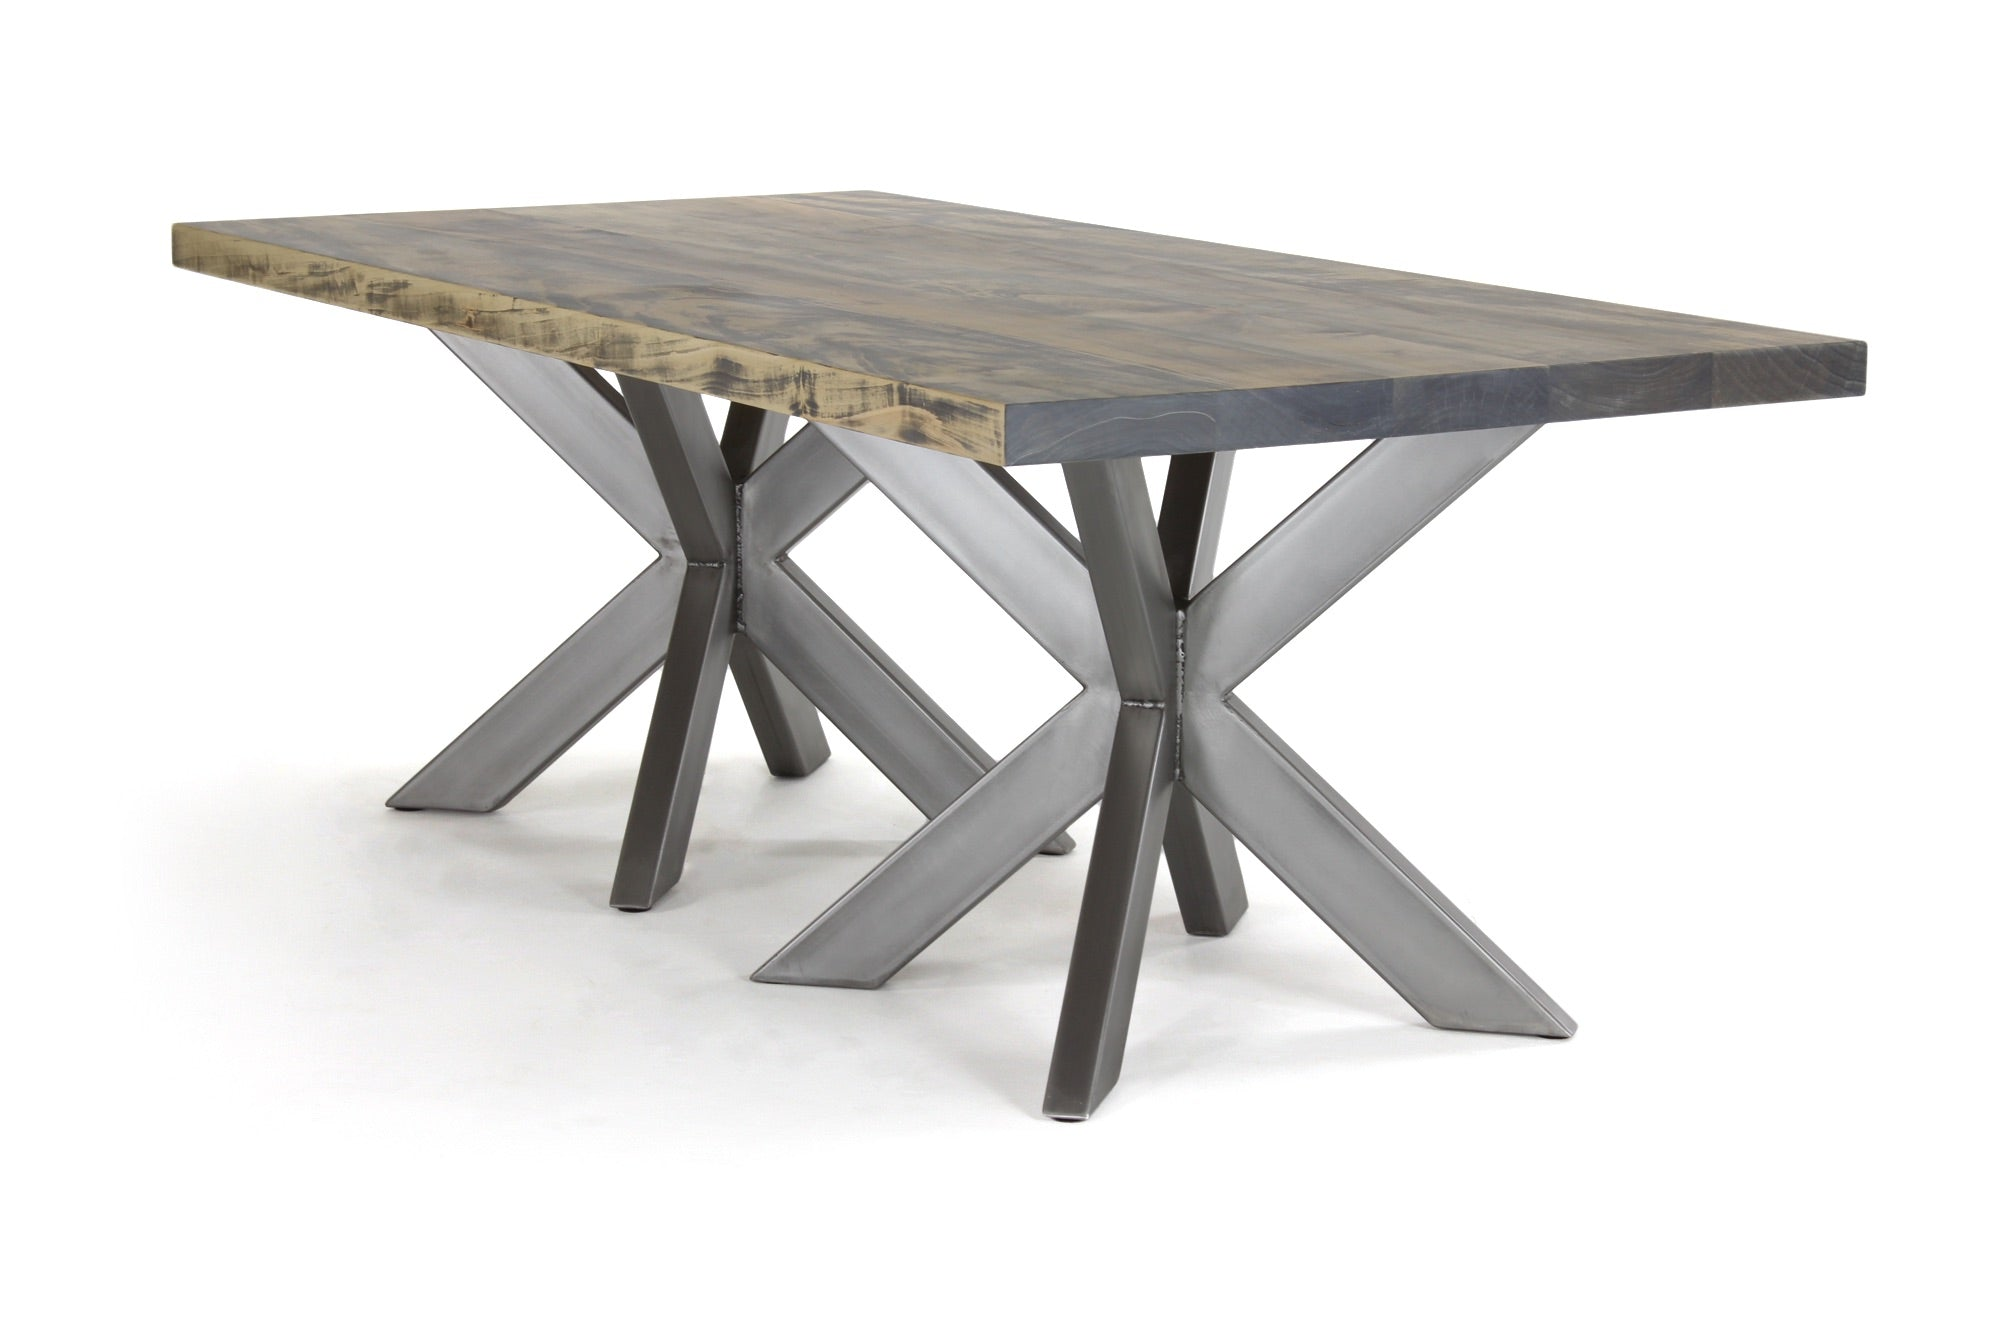 double jak dining table | worn maple wood finish with stainless steel